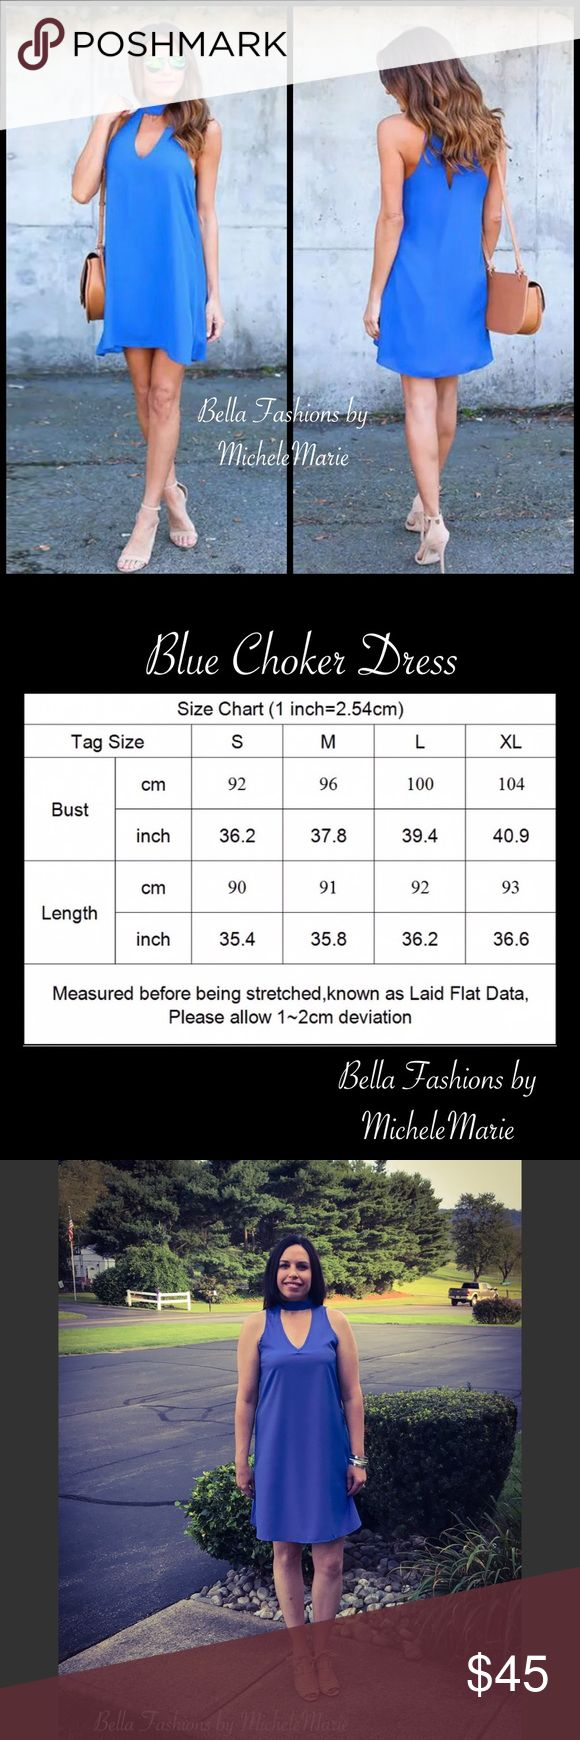 🆕 Blue Chiffon Loose Choker Dress S M Blue Chiffon Loose Choker Dress with two button closures. See size chart in pictures. I'm 5'7, 130 lbs wearing a small. 65% cotton 35% Polyester. No trades. No low ball offers. Bundle to save. Reasonable offers only, please. All my boutique items are great quality. Follow me on FB & INSTAGRAM. Search for Fashion by Bella Boutique. Dresses